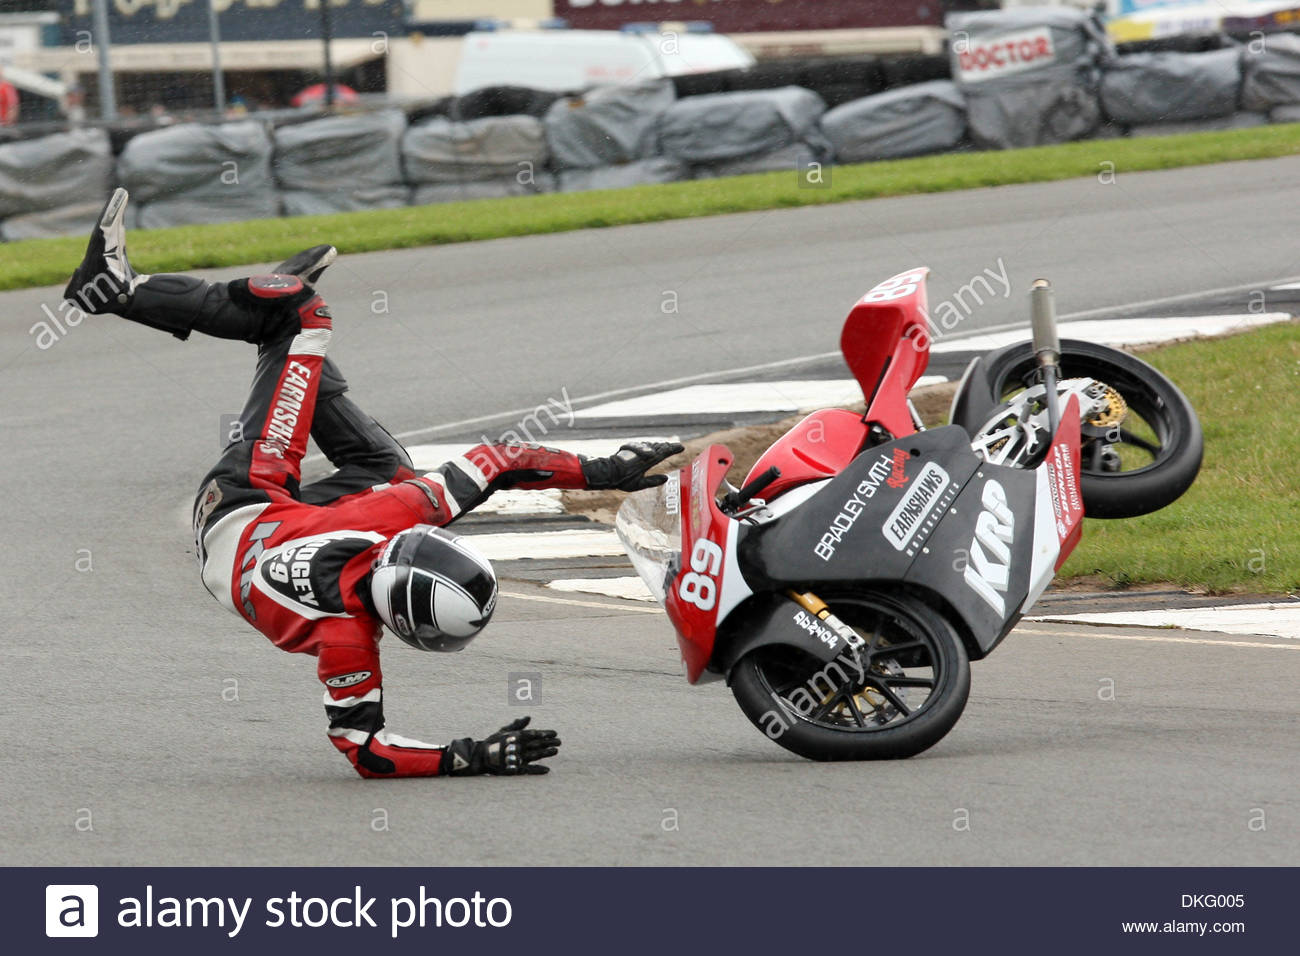 Wild Card entry, james Lodge crashes out in spectacular style on his KRP/Bradley Smith 125cc Honda causing the race Stock Photo